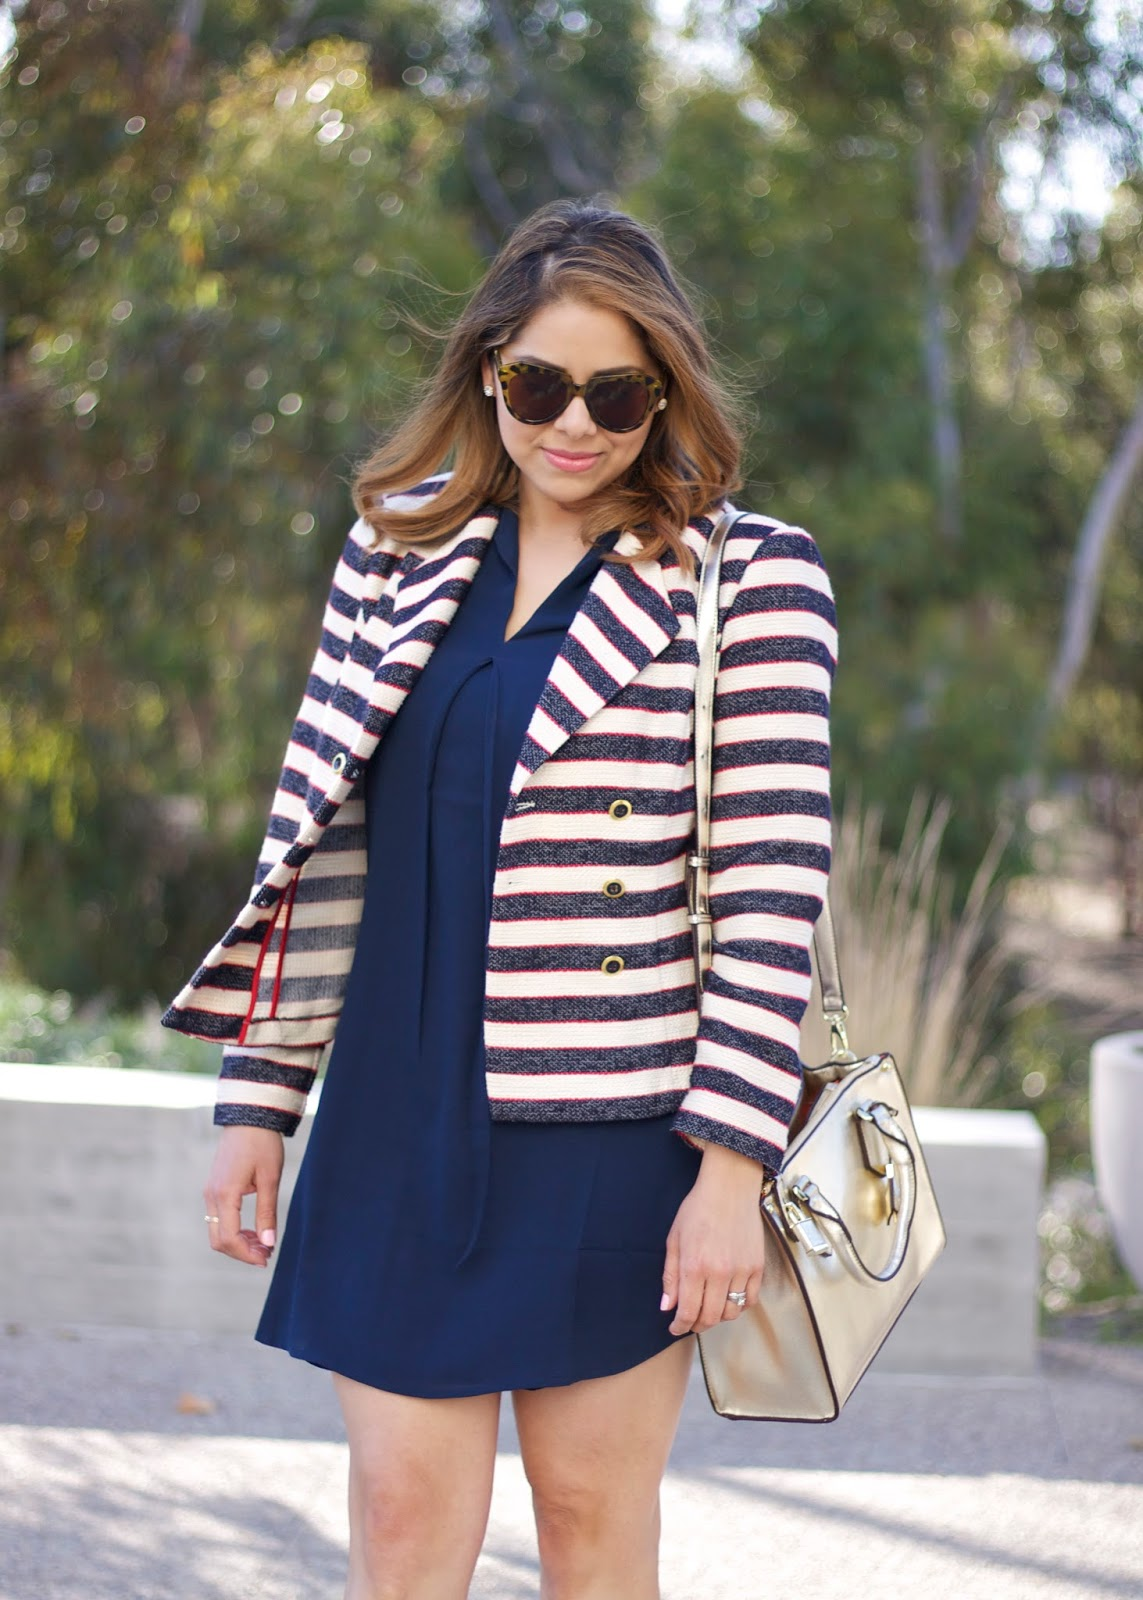 mexican fashion blogger, life of a fashion blogger, nautical fashion, nautical outfit